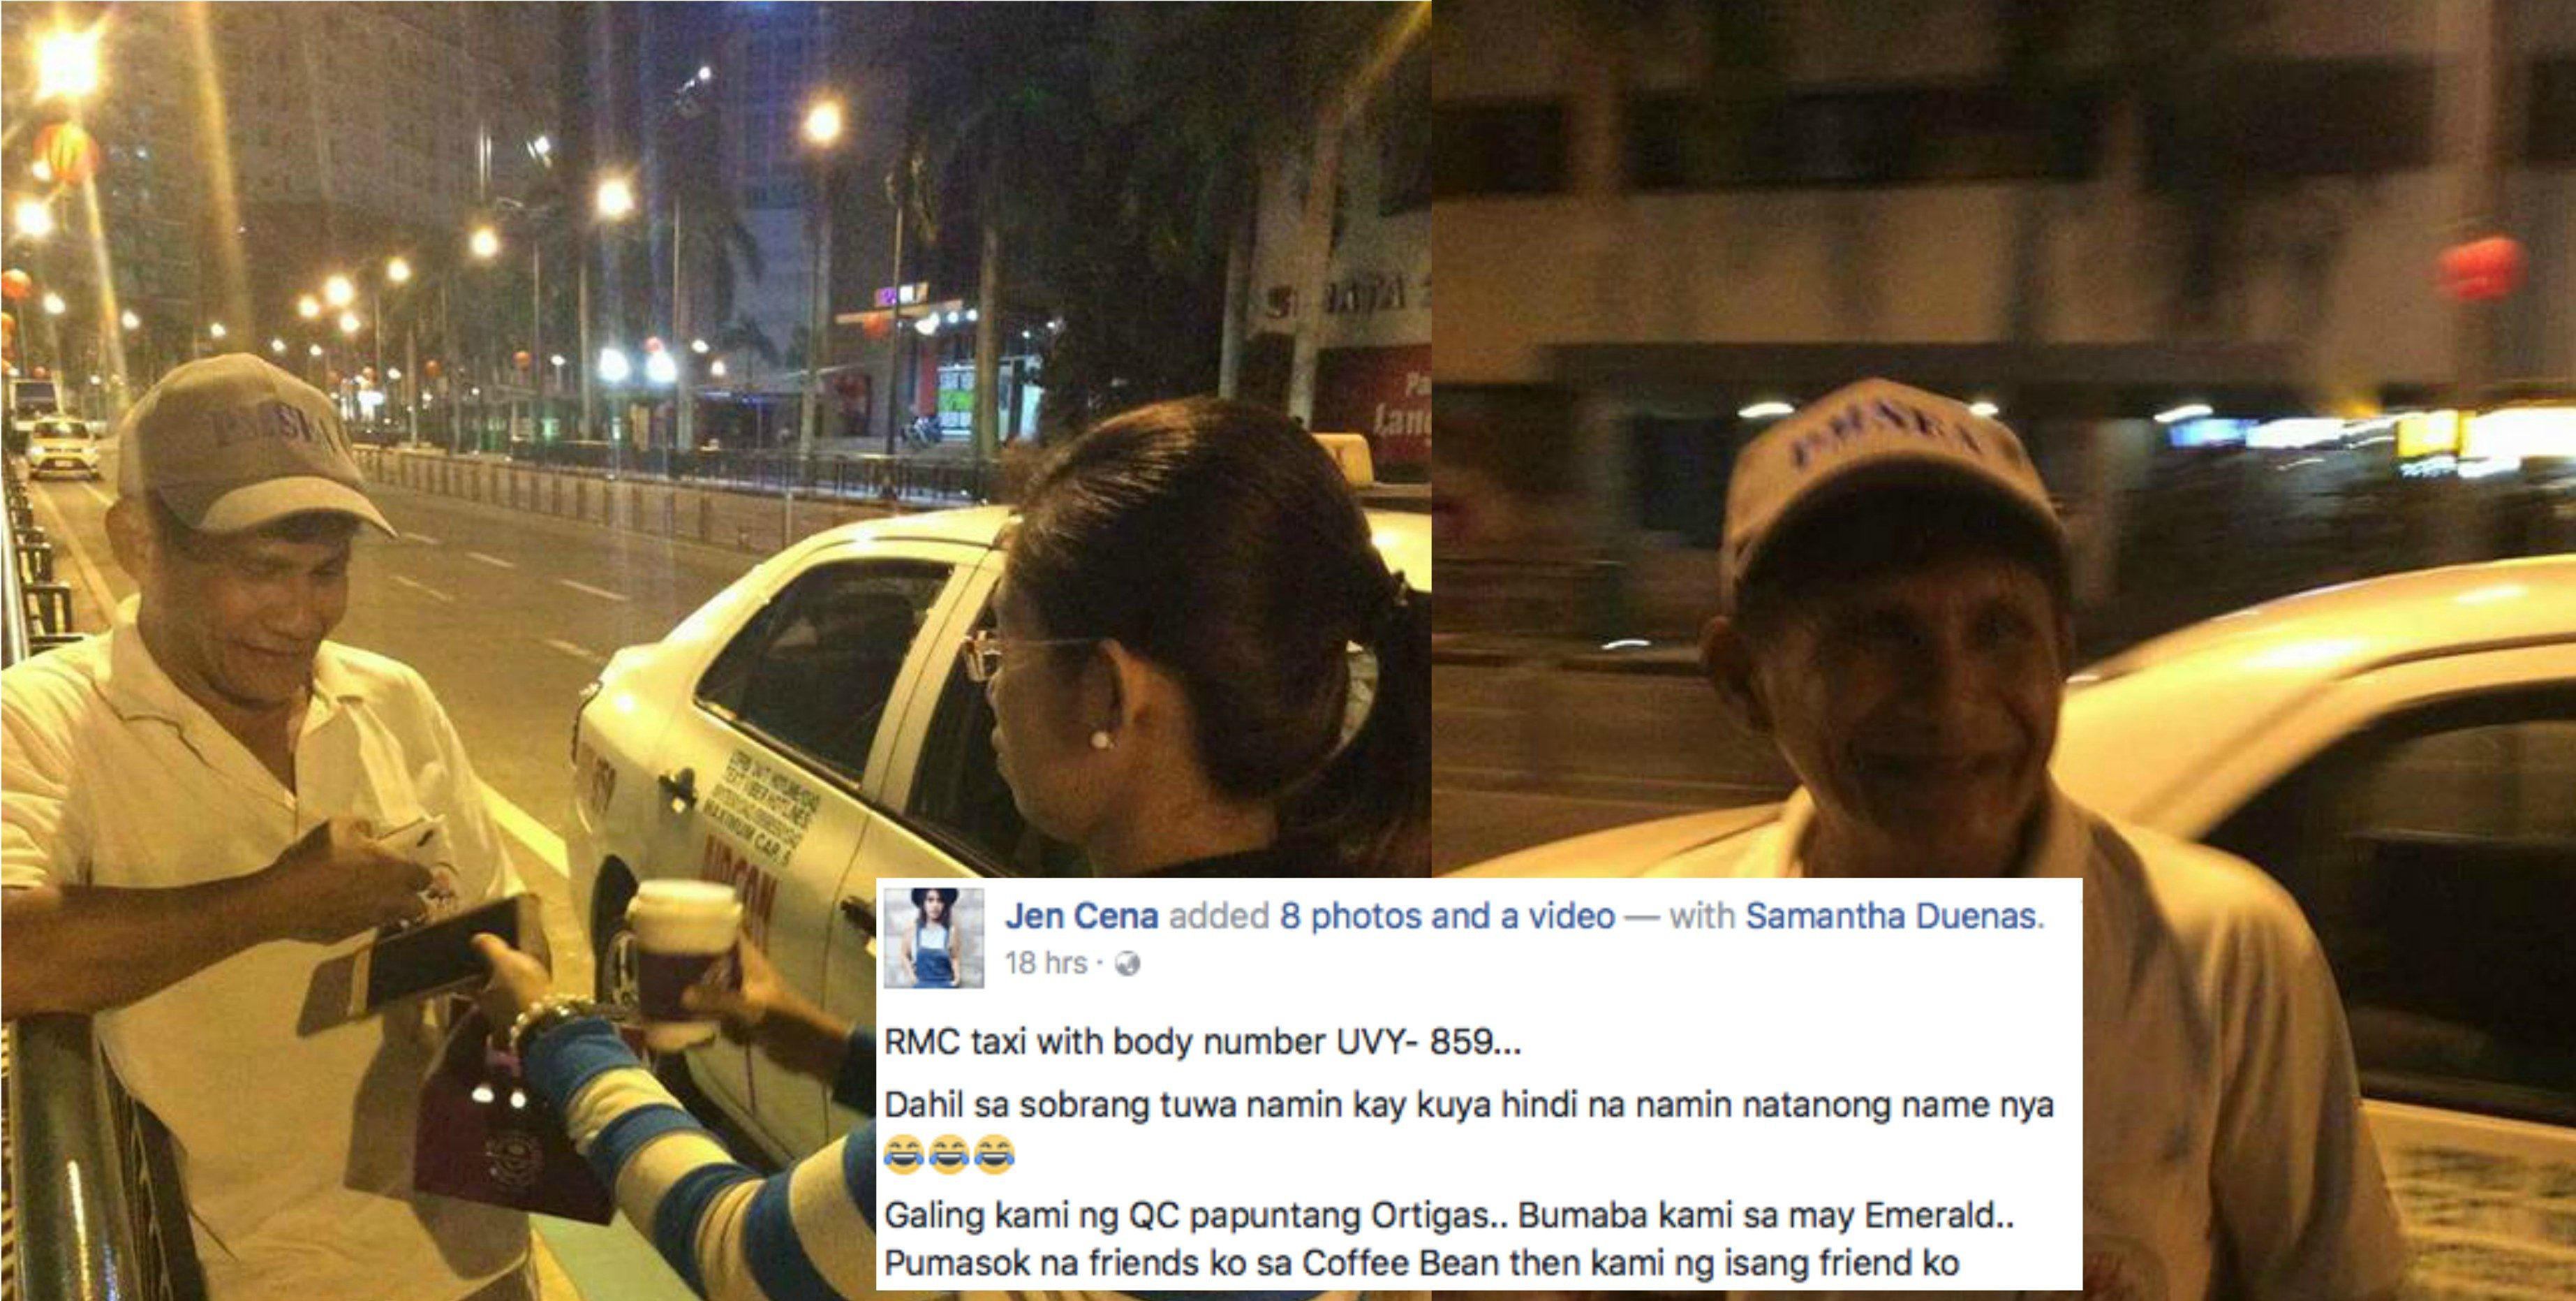 Honest taxi driver hands back passenger's forgotten bag containing £10,000